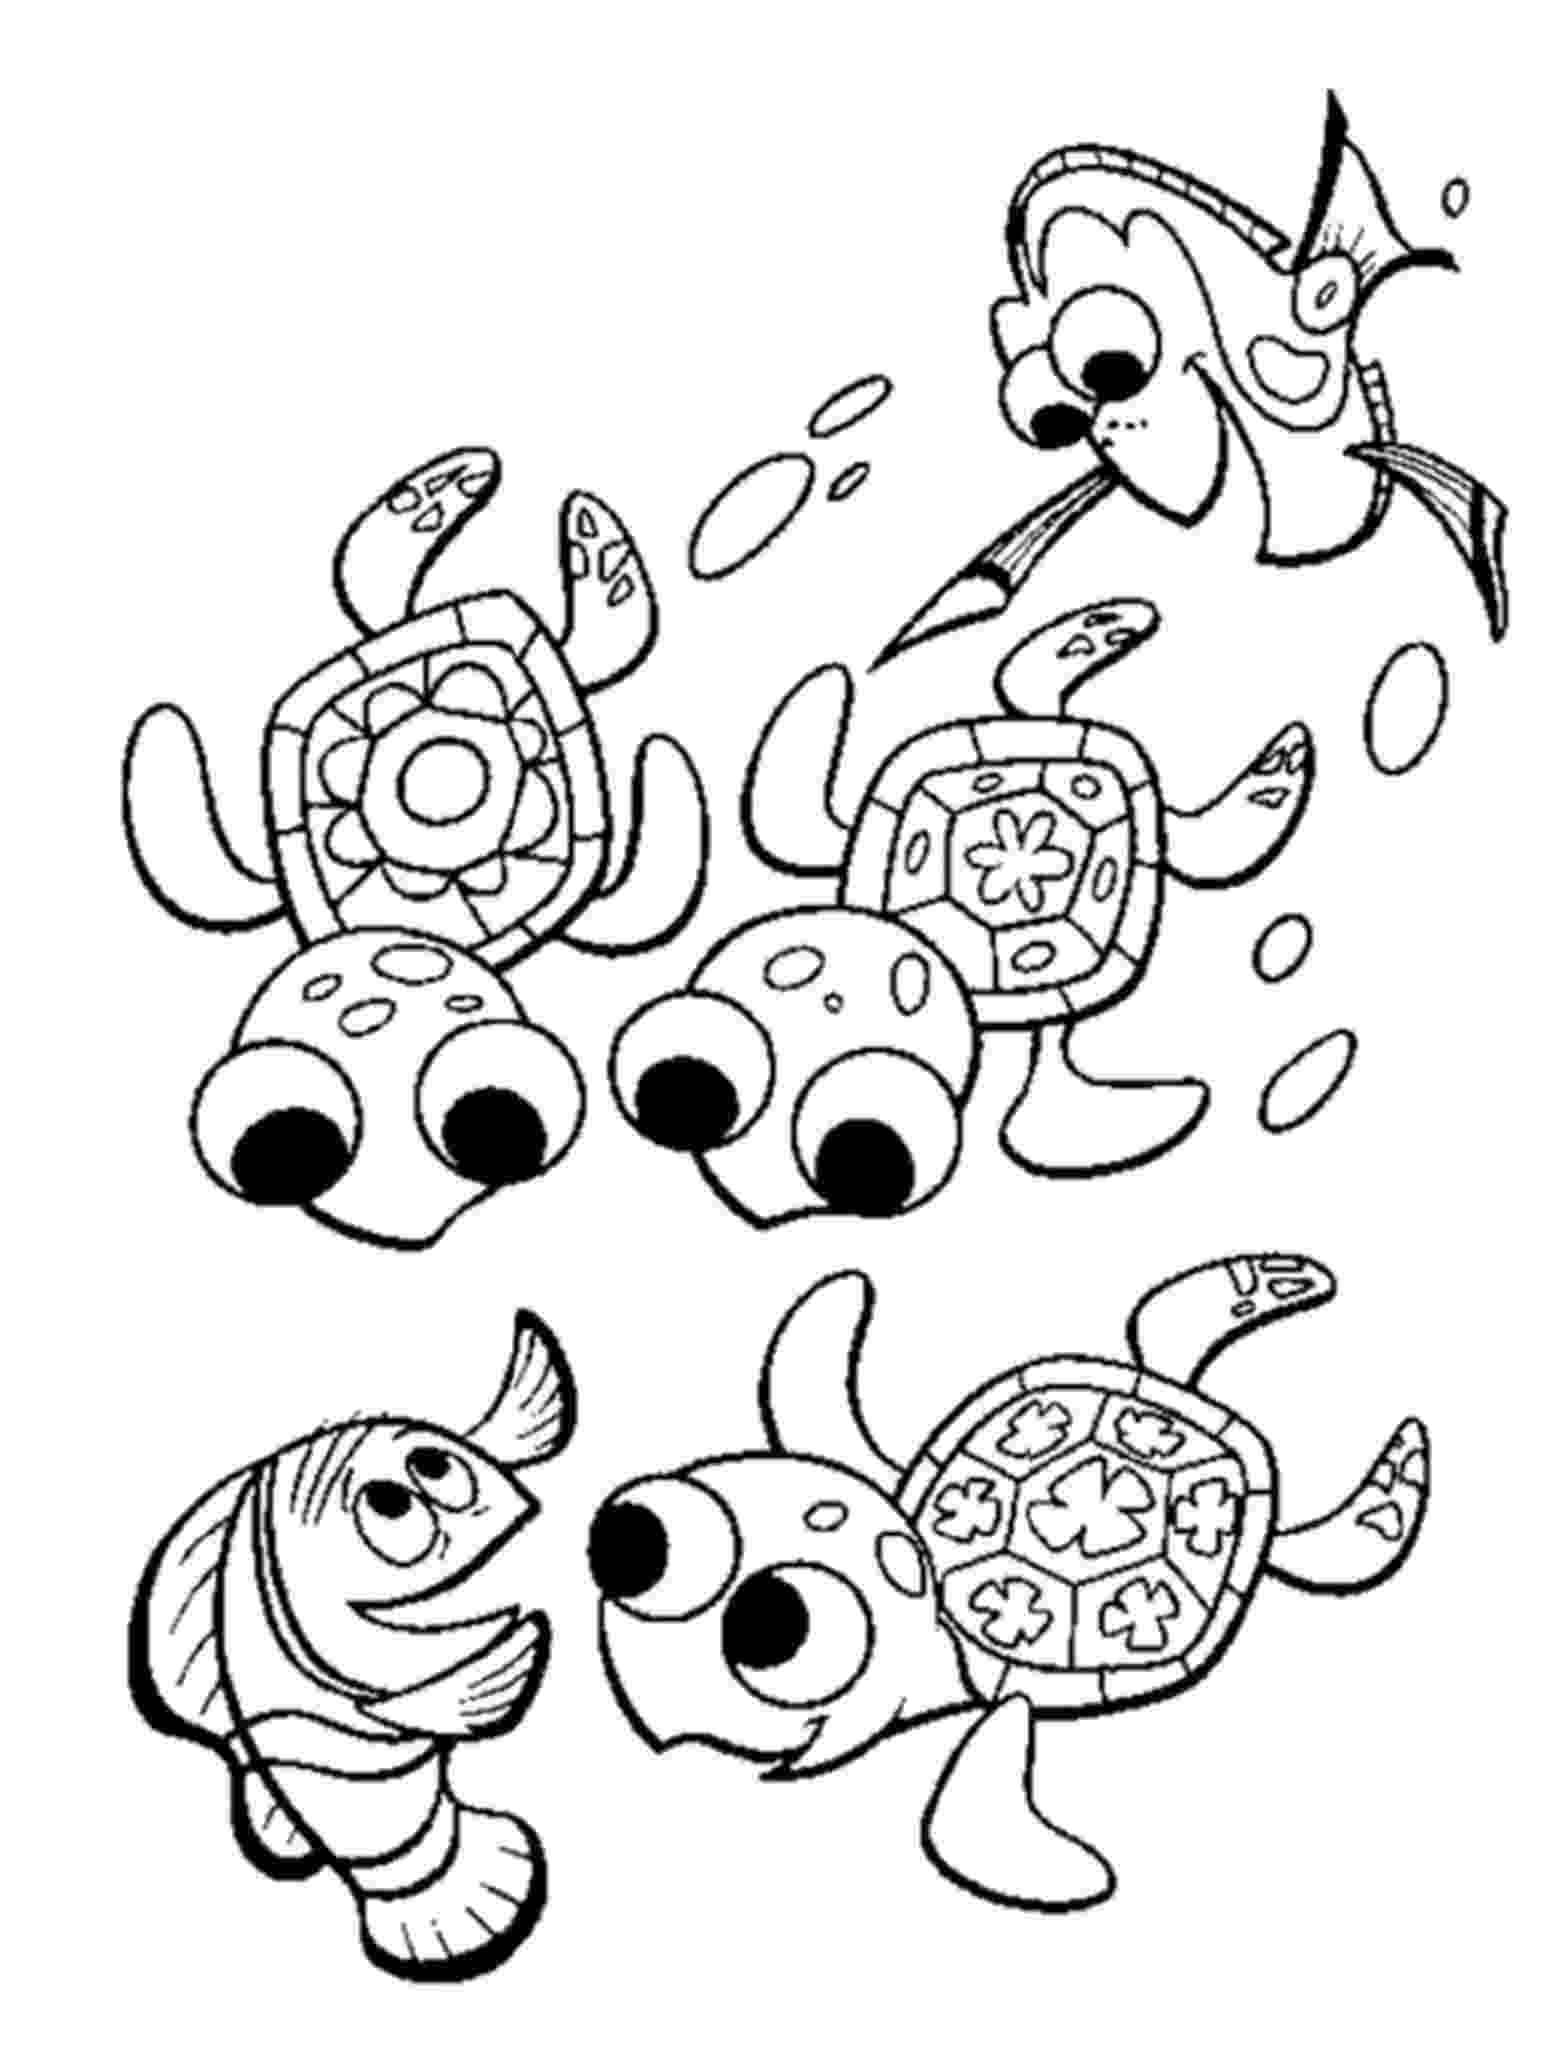 coloring pages of sea turtles sea turtle coloring pages 360coloringpages pages sea coloring turtles of